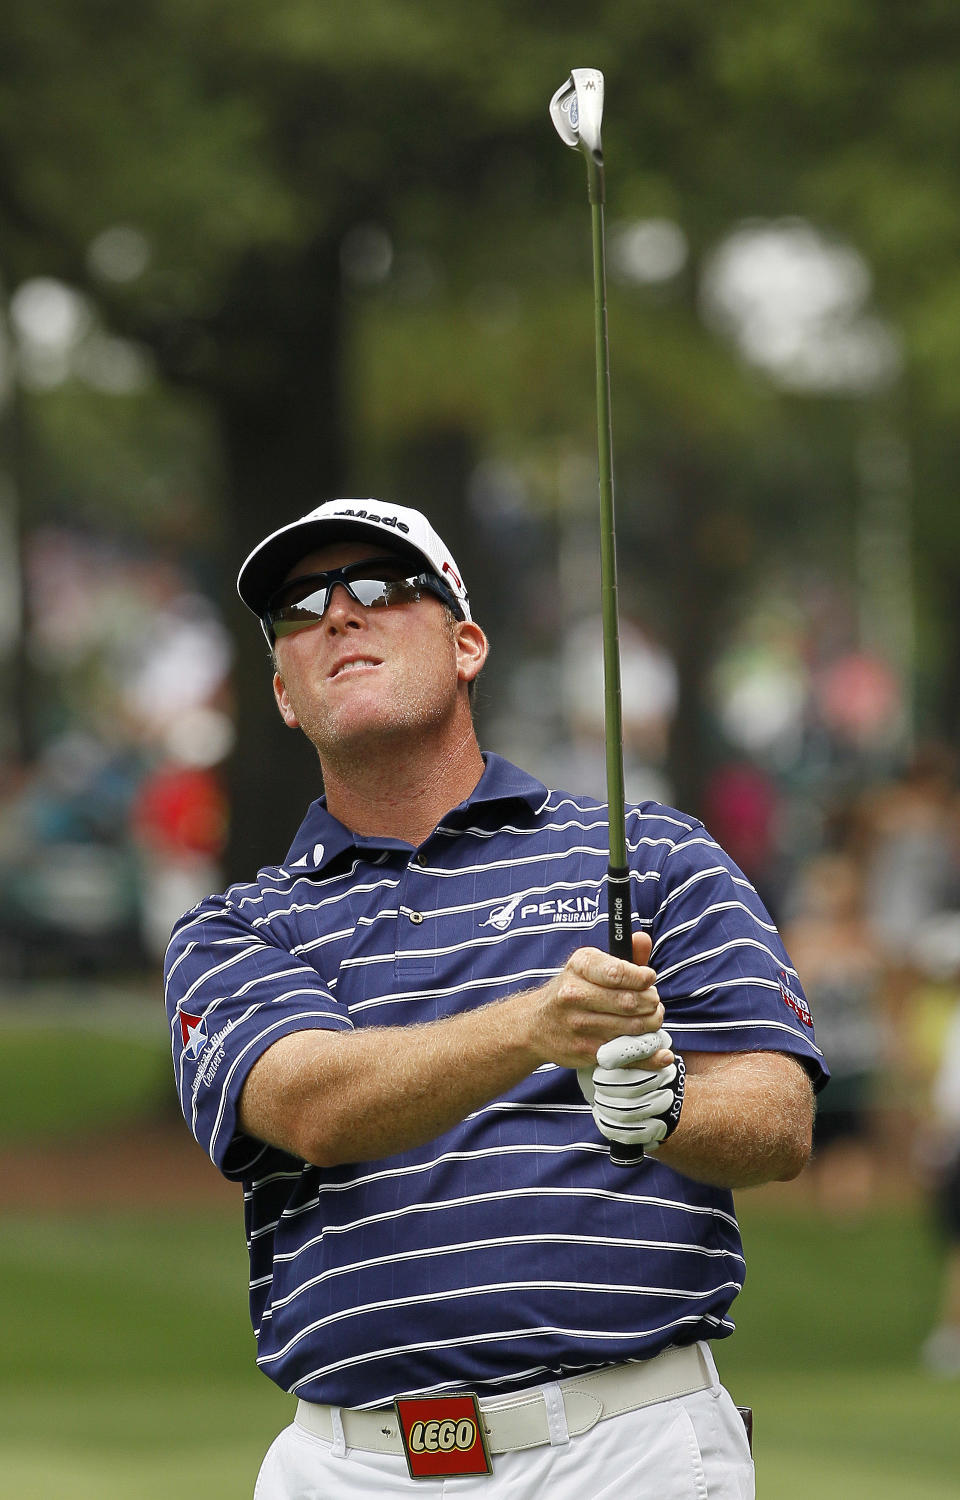 D.A. Points watches a shot from the first fairway during the third round of the Wells Fargo Championship golf tournament at Quail Hollow Club in Charlotte, N.C., Saturday, May 5, 2012. (AP Photo/Gerry Broome)